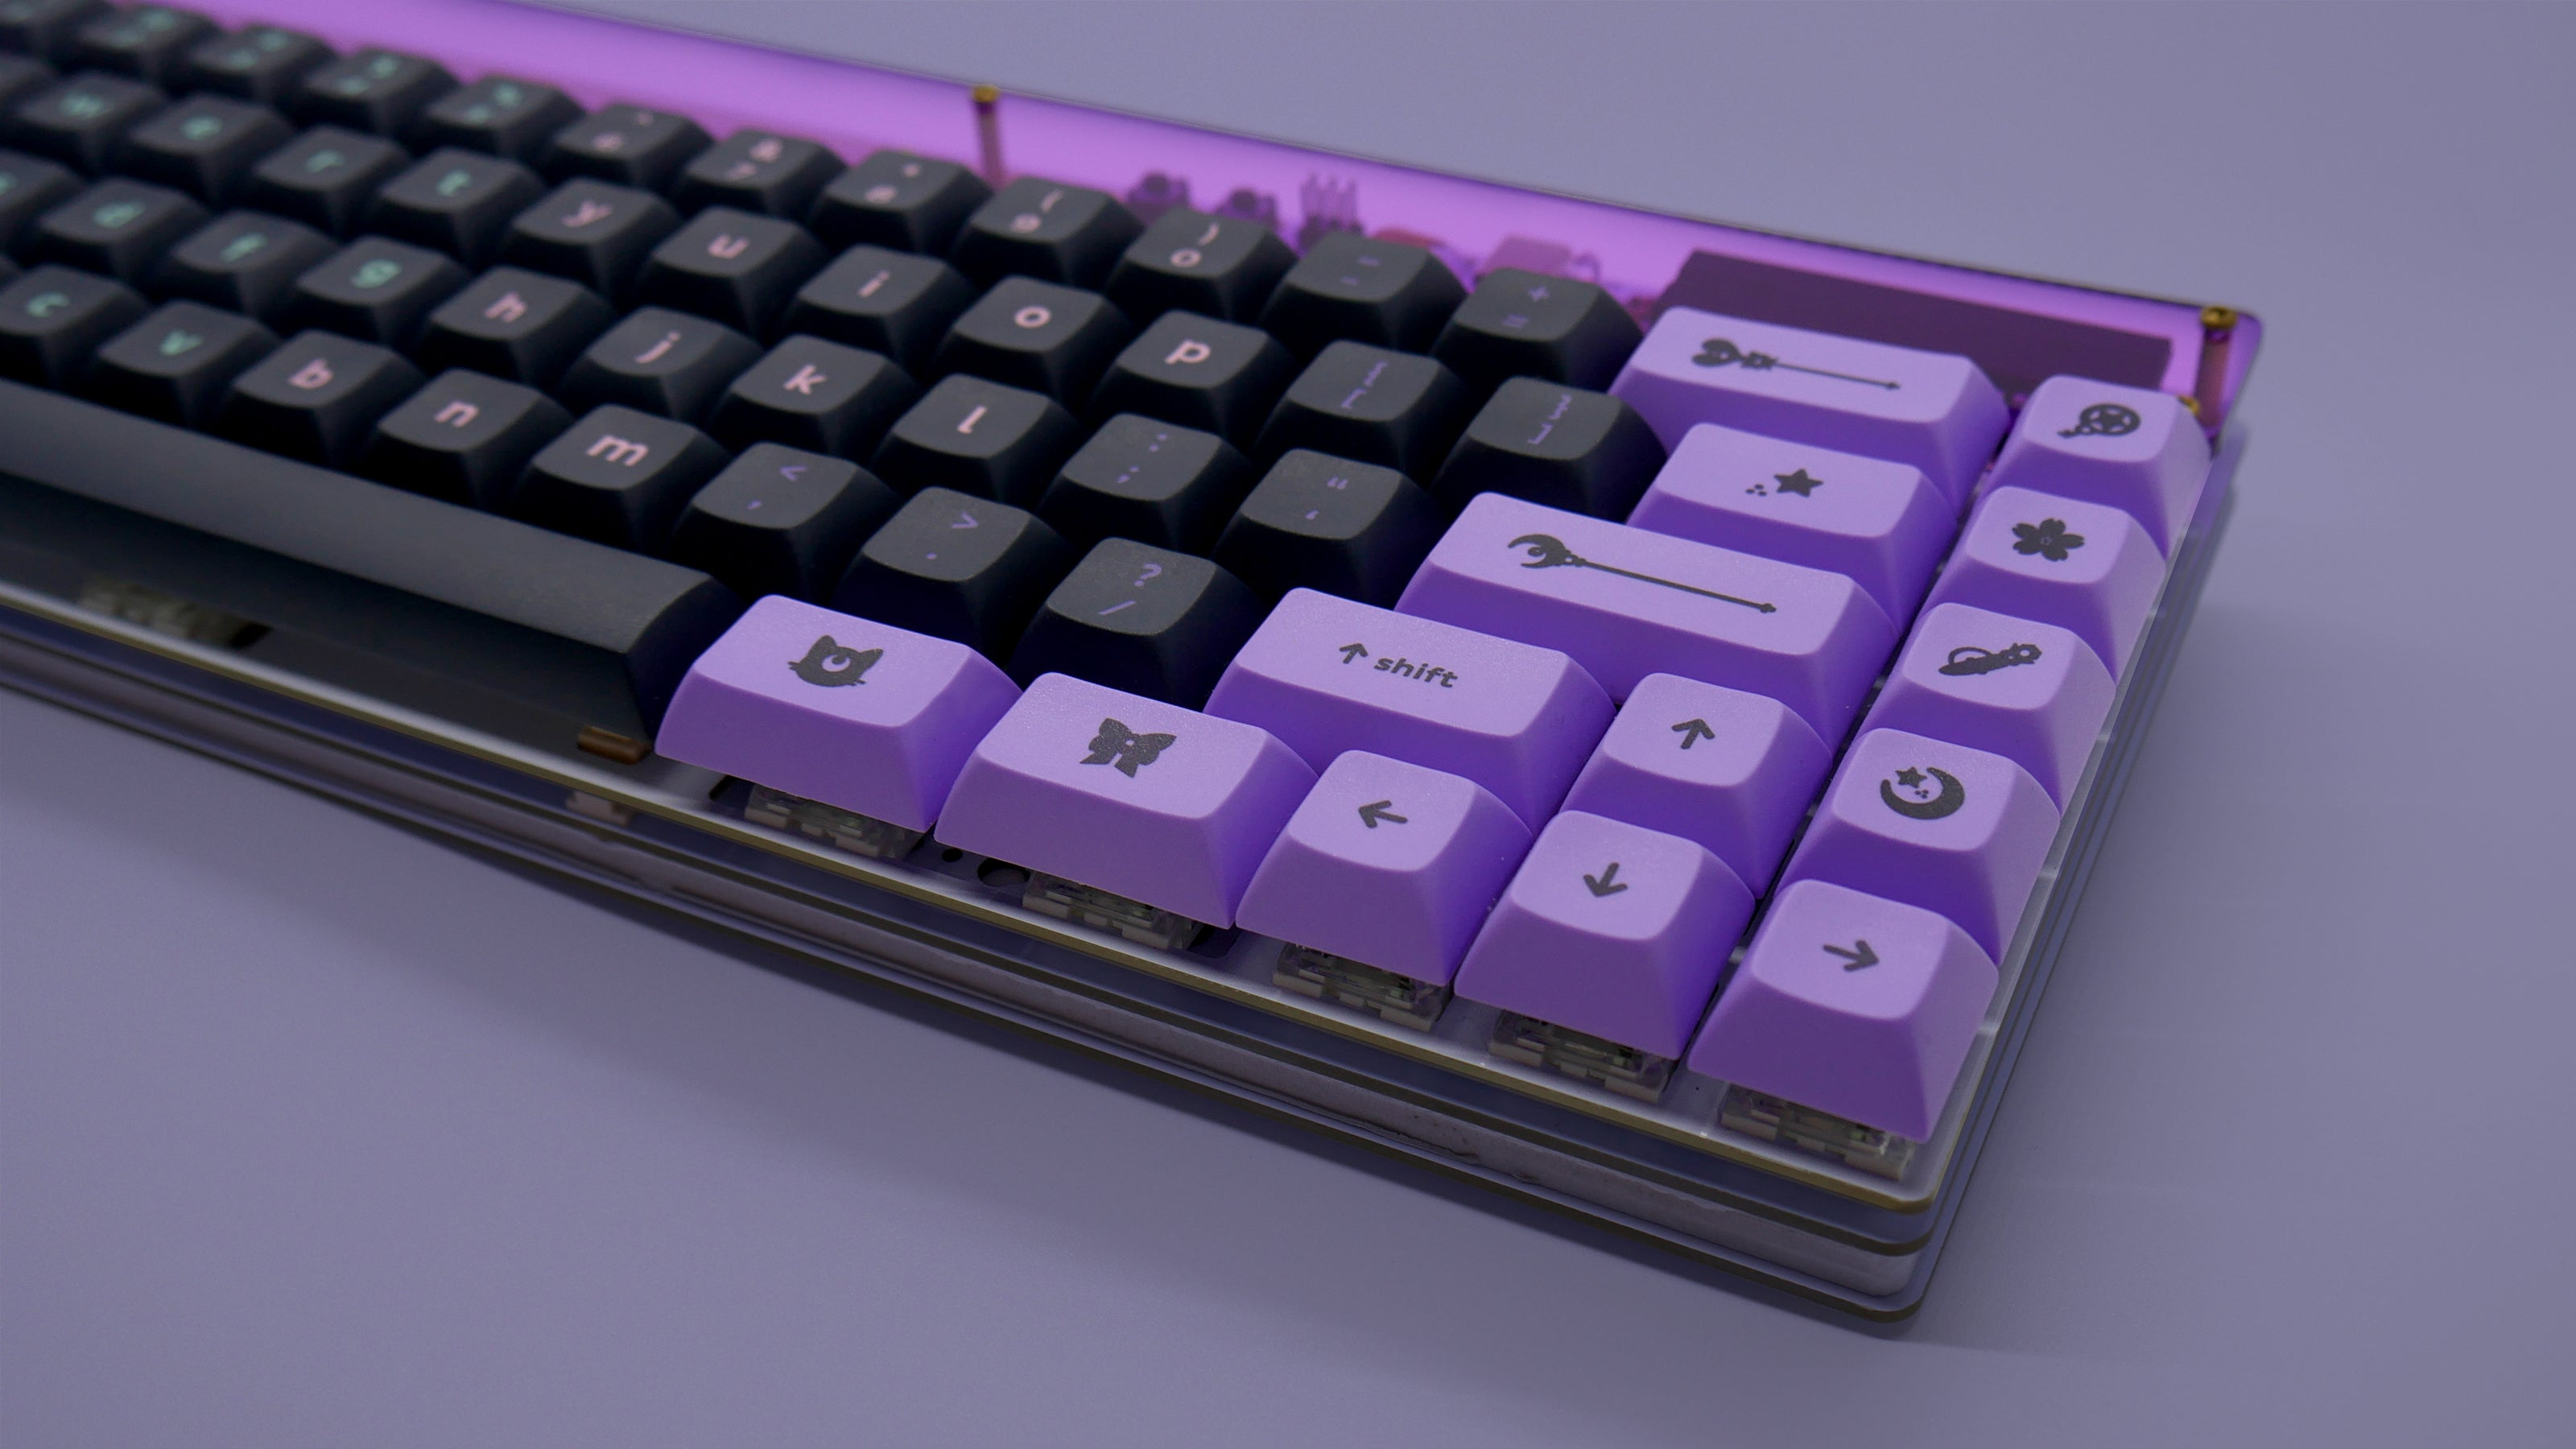 Dark Magic Girl by Infinikey prototype keycaps.